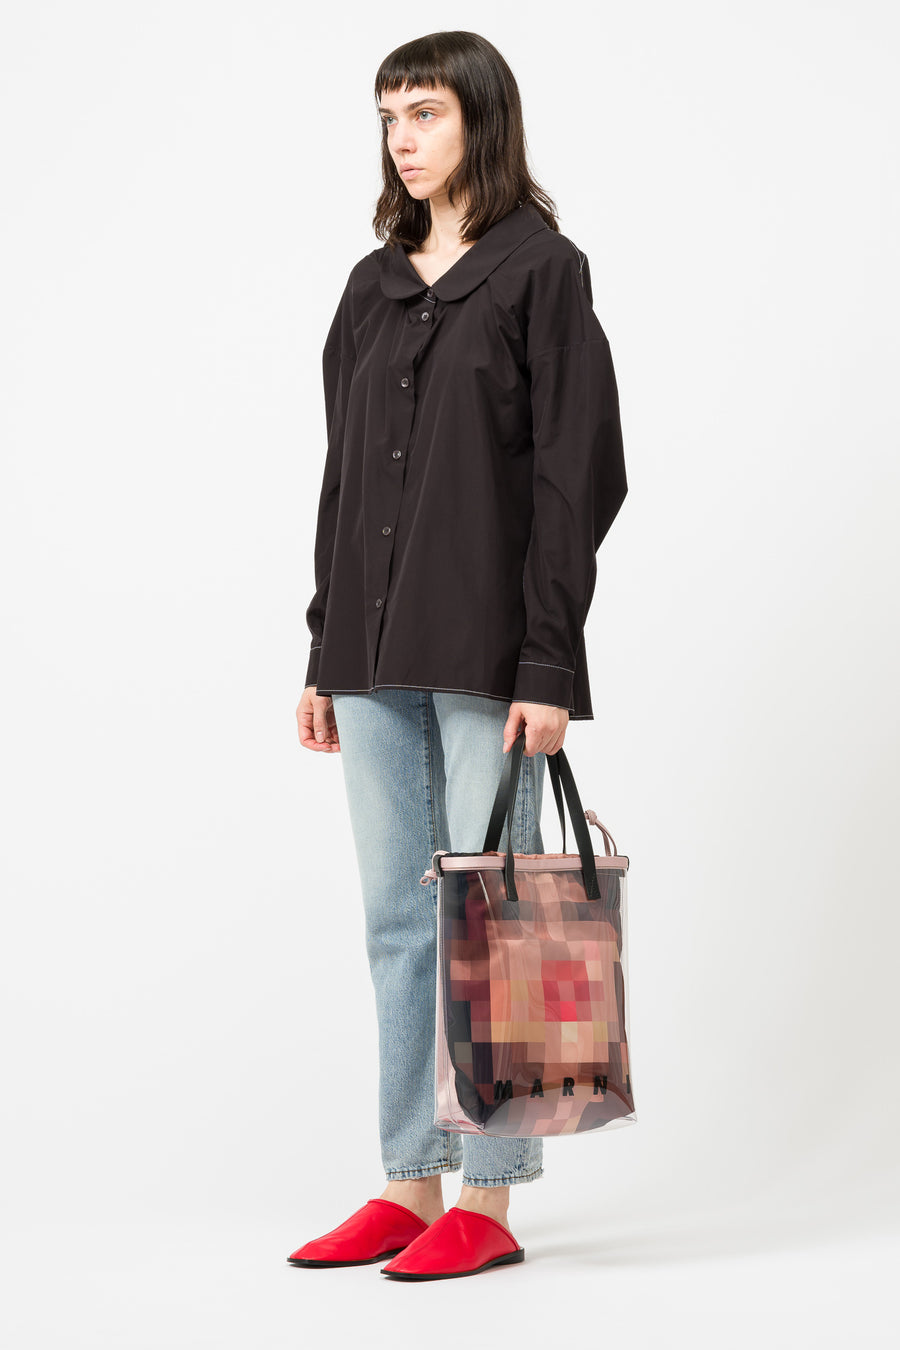 Marni Shopping Bag in Clear/Multi - Notre